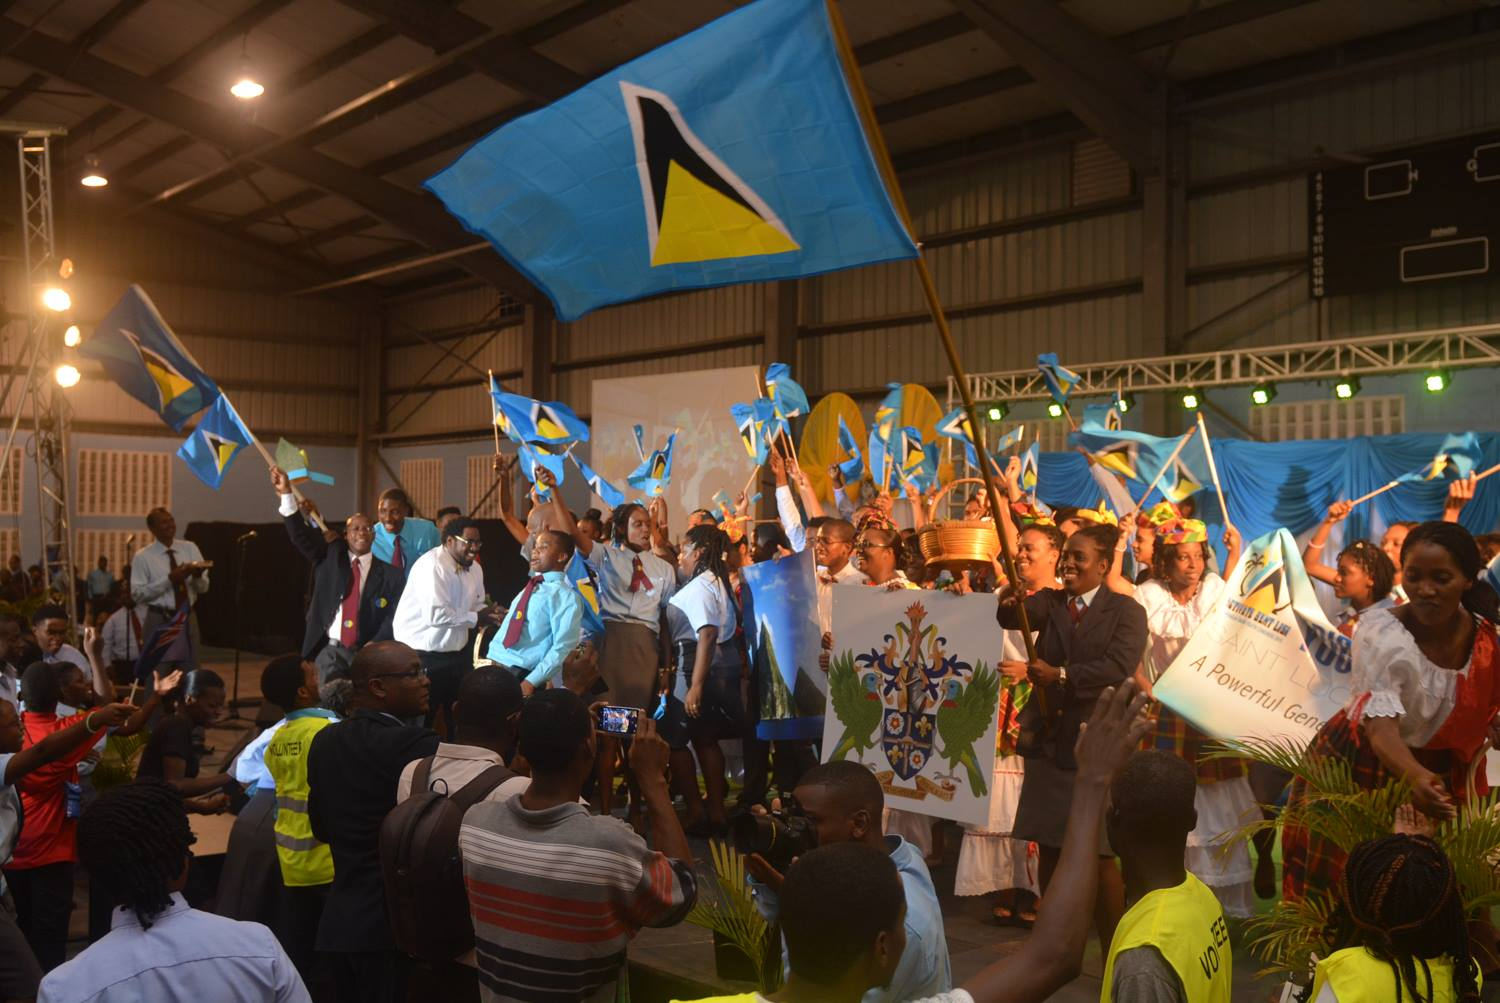 Seventh-day Adventist Youth from St. Lucia was their flags and hold banners at the Beausejour Auditorium in Castries, as they welcome the rest of youth congress delegation from neighboring islands in the Caribbean. The congress drew nearly 1,000 young people for one week of service in communities and one of leadership training from July 19 to August 1, 2015. Images by Jabarrio Mykel Holligan